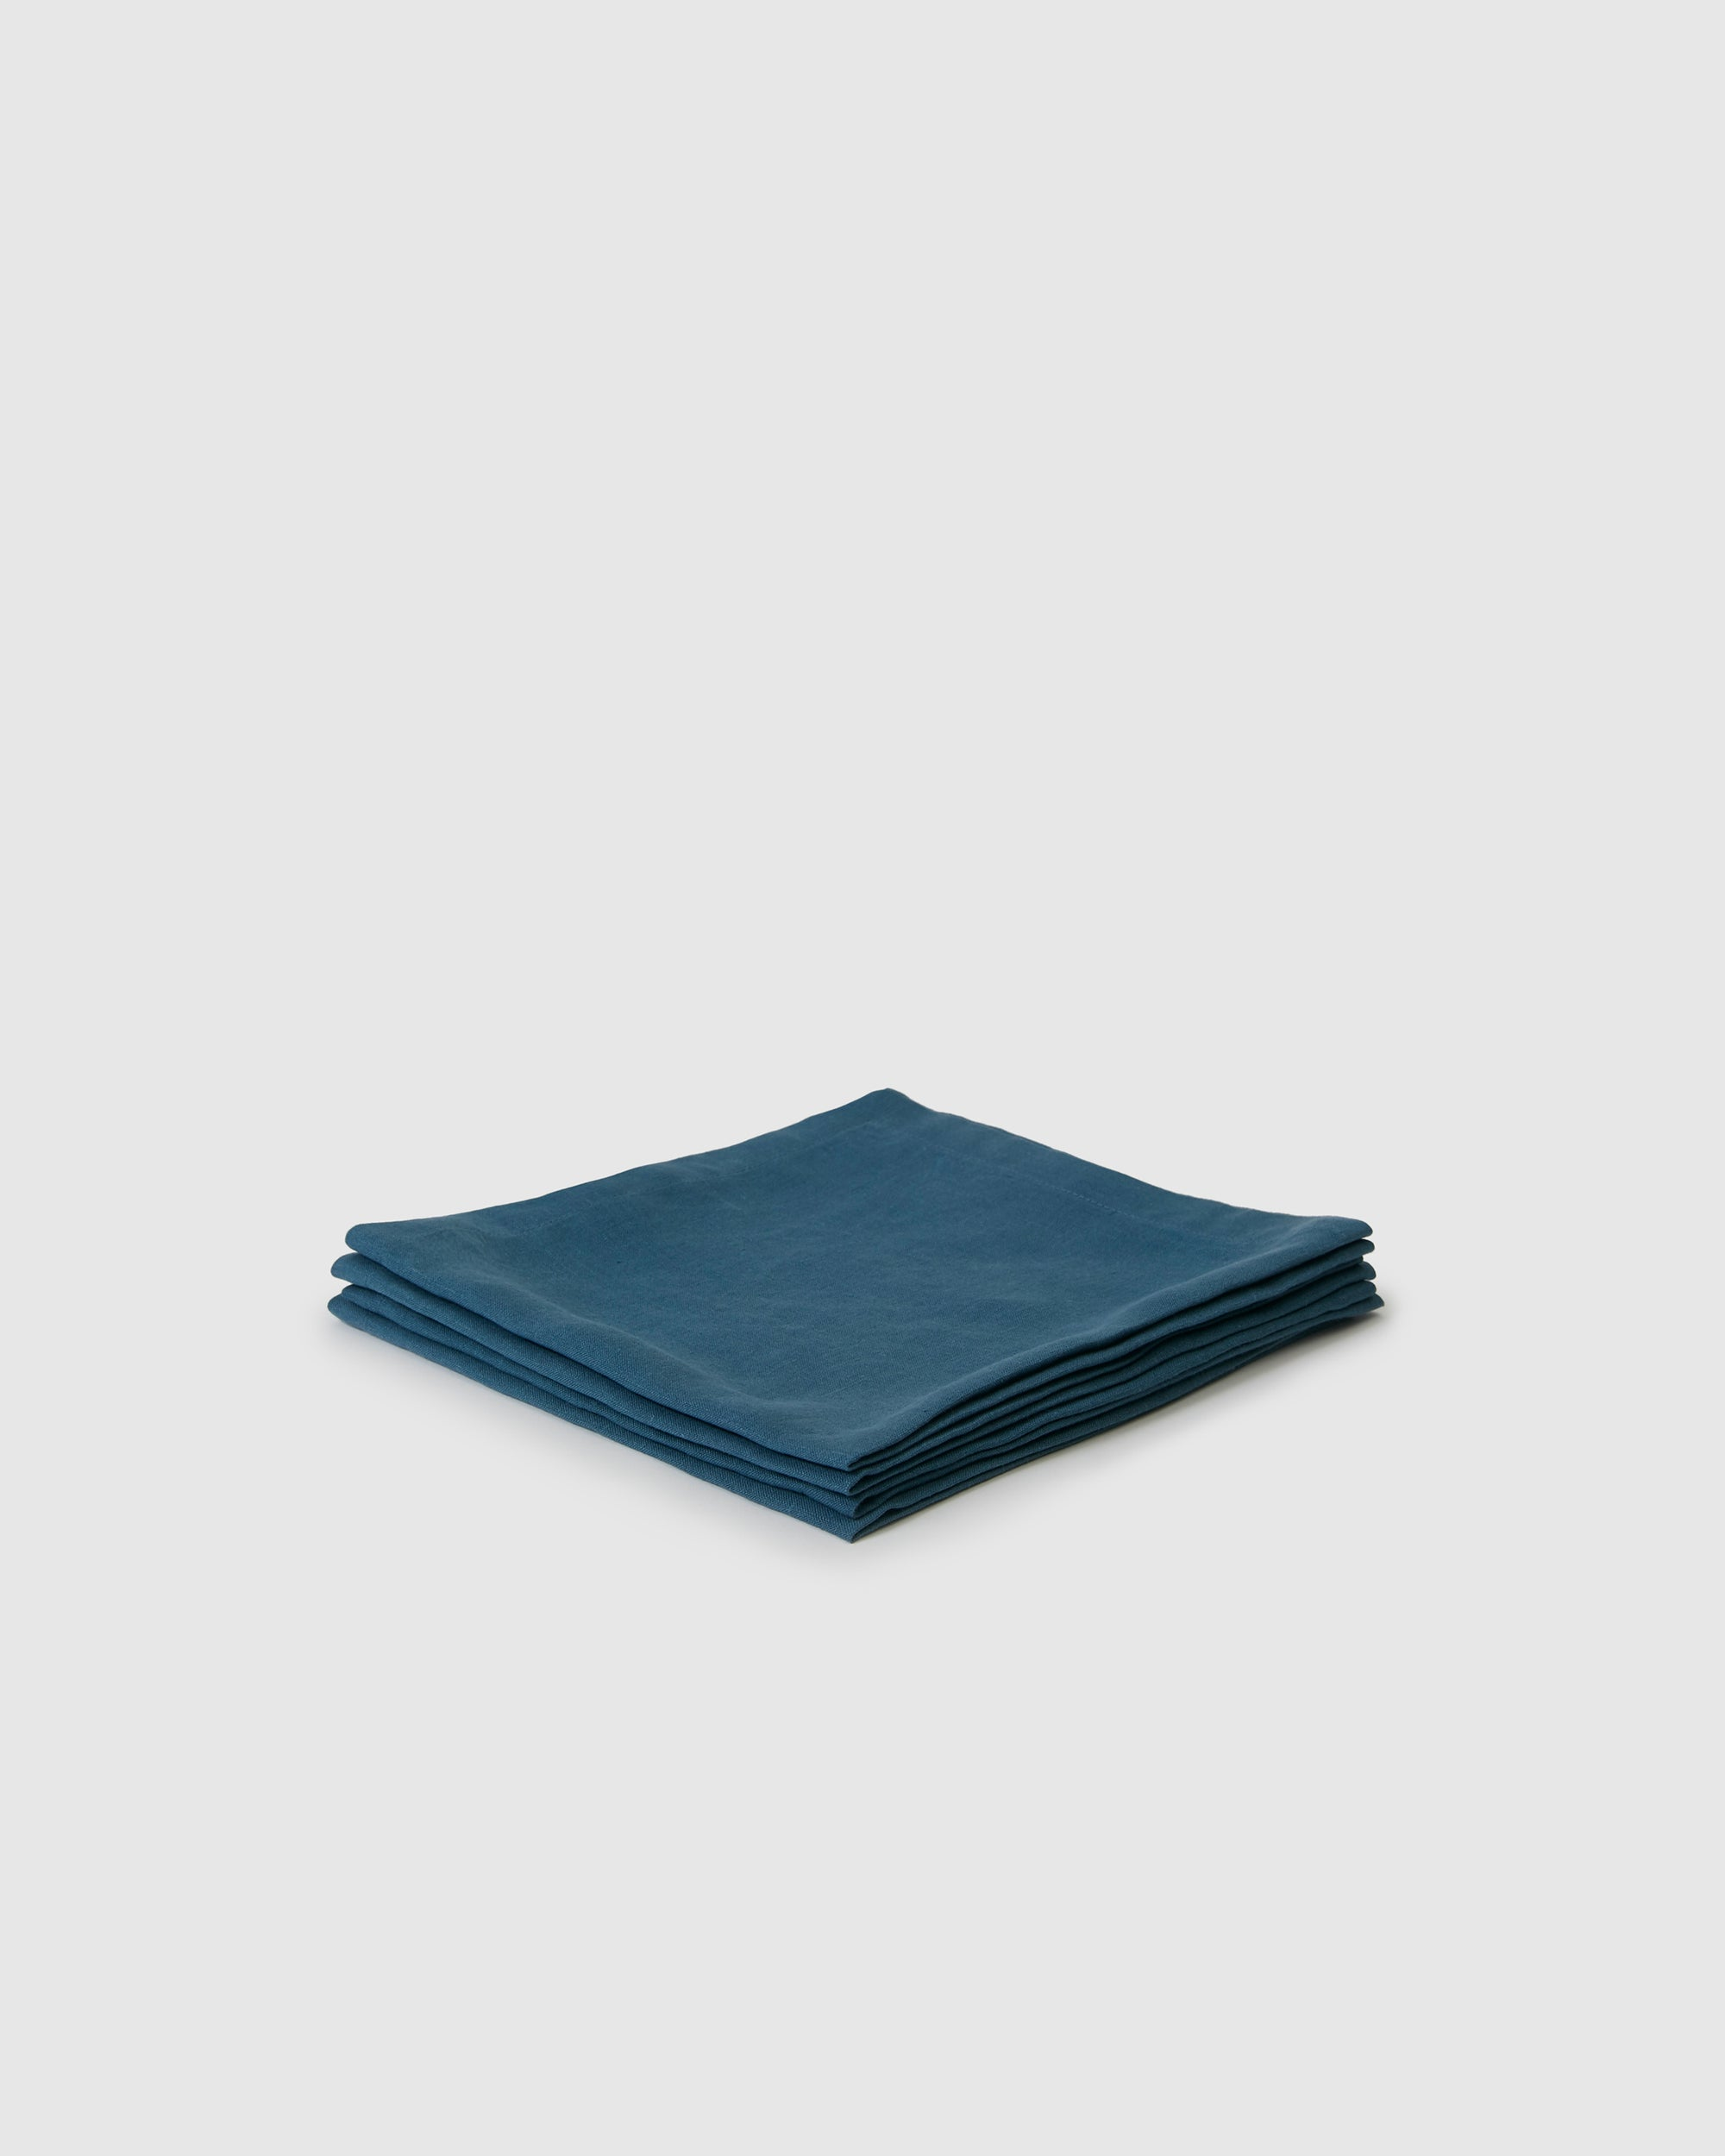 Berkeley Linen Table Napkins (Set of 4) - Adriatic